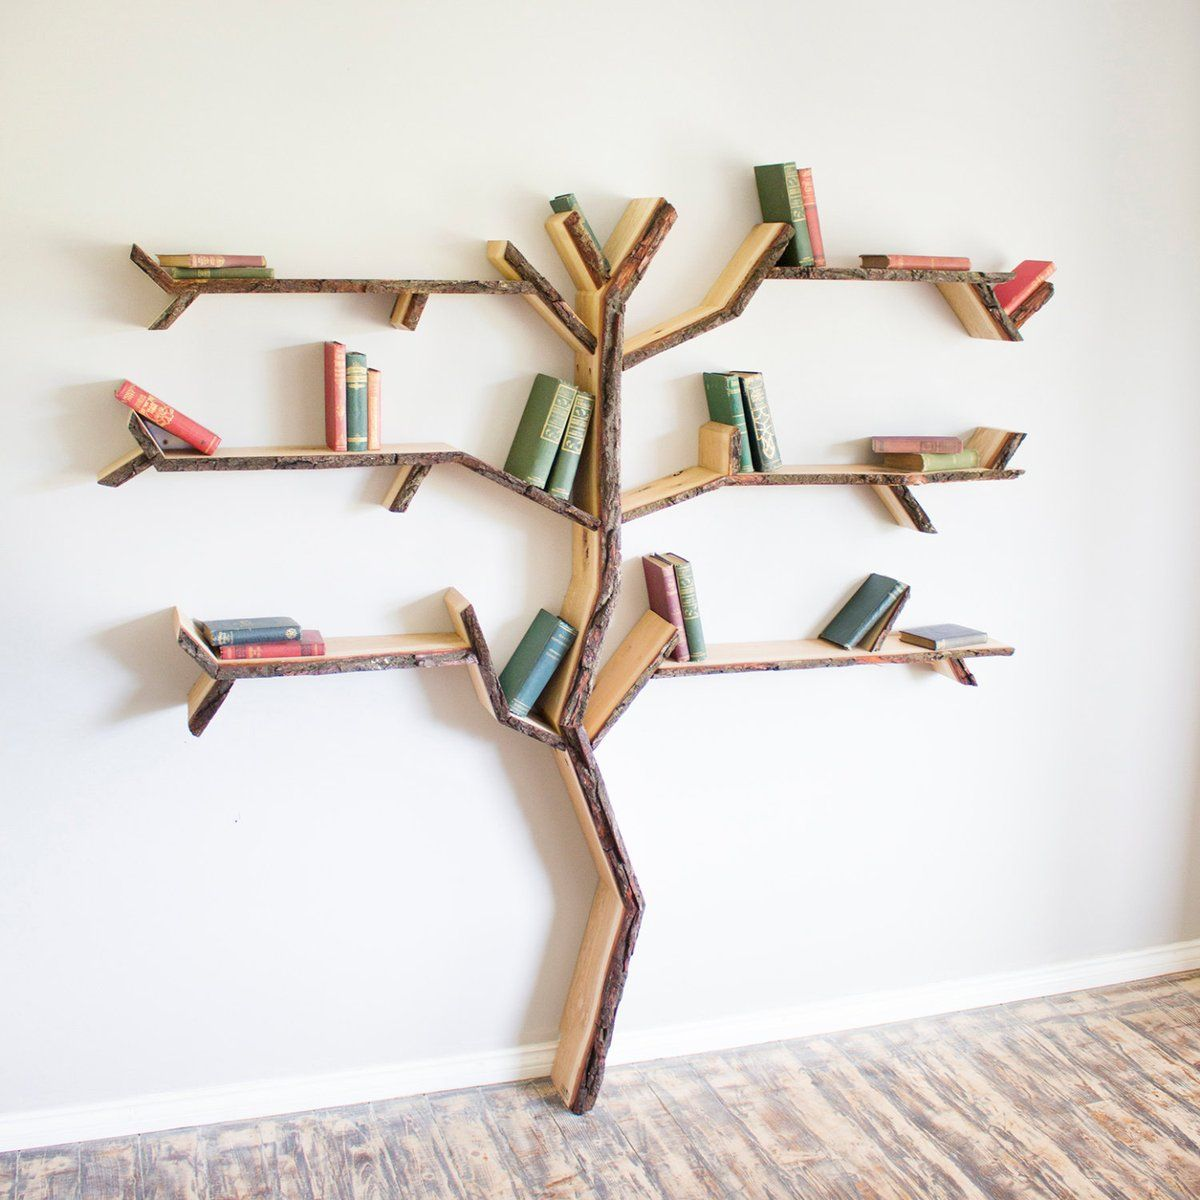 Etsy UK EtsyUK On Twitter Tree Shelf Bookshelf Bookshelves